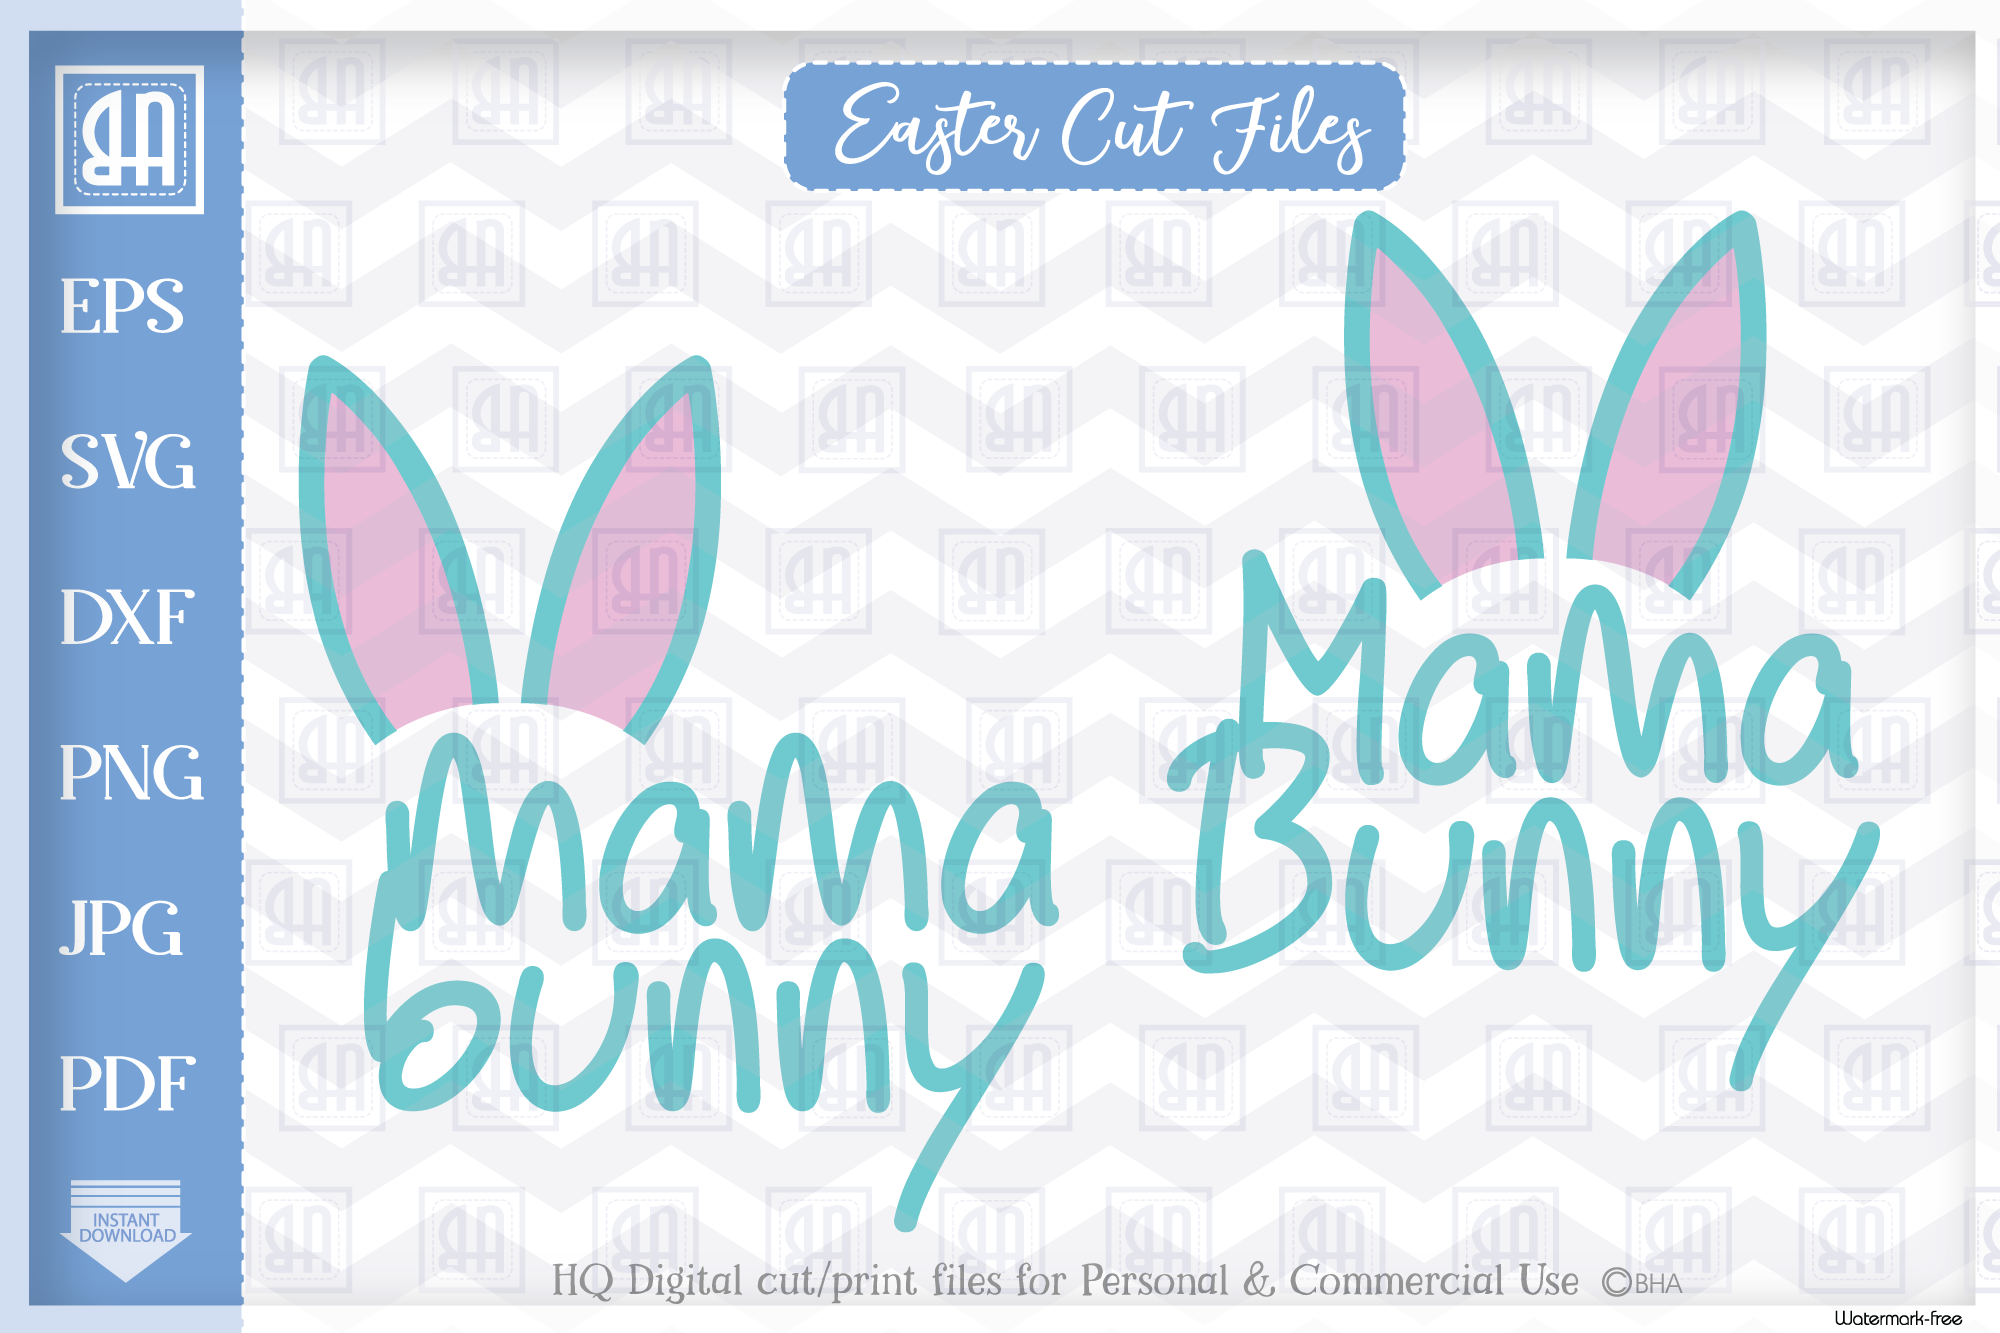 Download Free Mama Bunny Easter Bunny Easter Graphic By Blueberry Hill Art SVG Cut Files